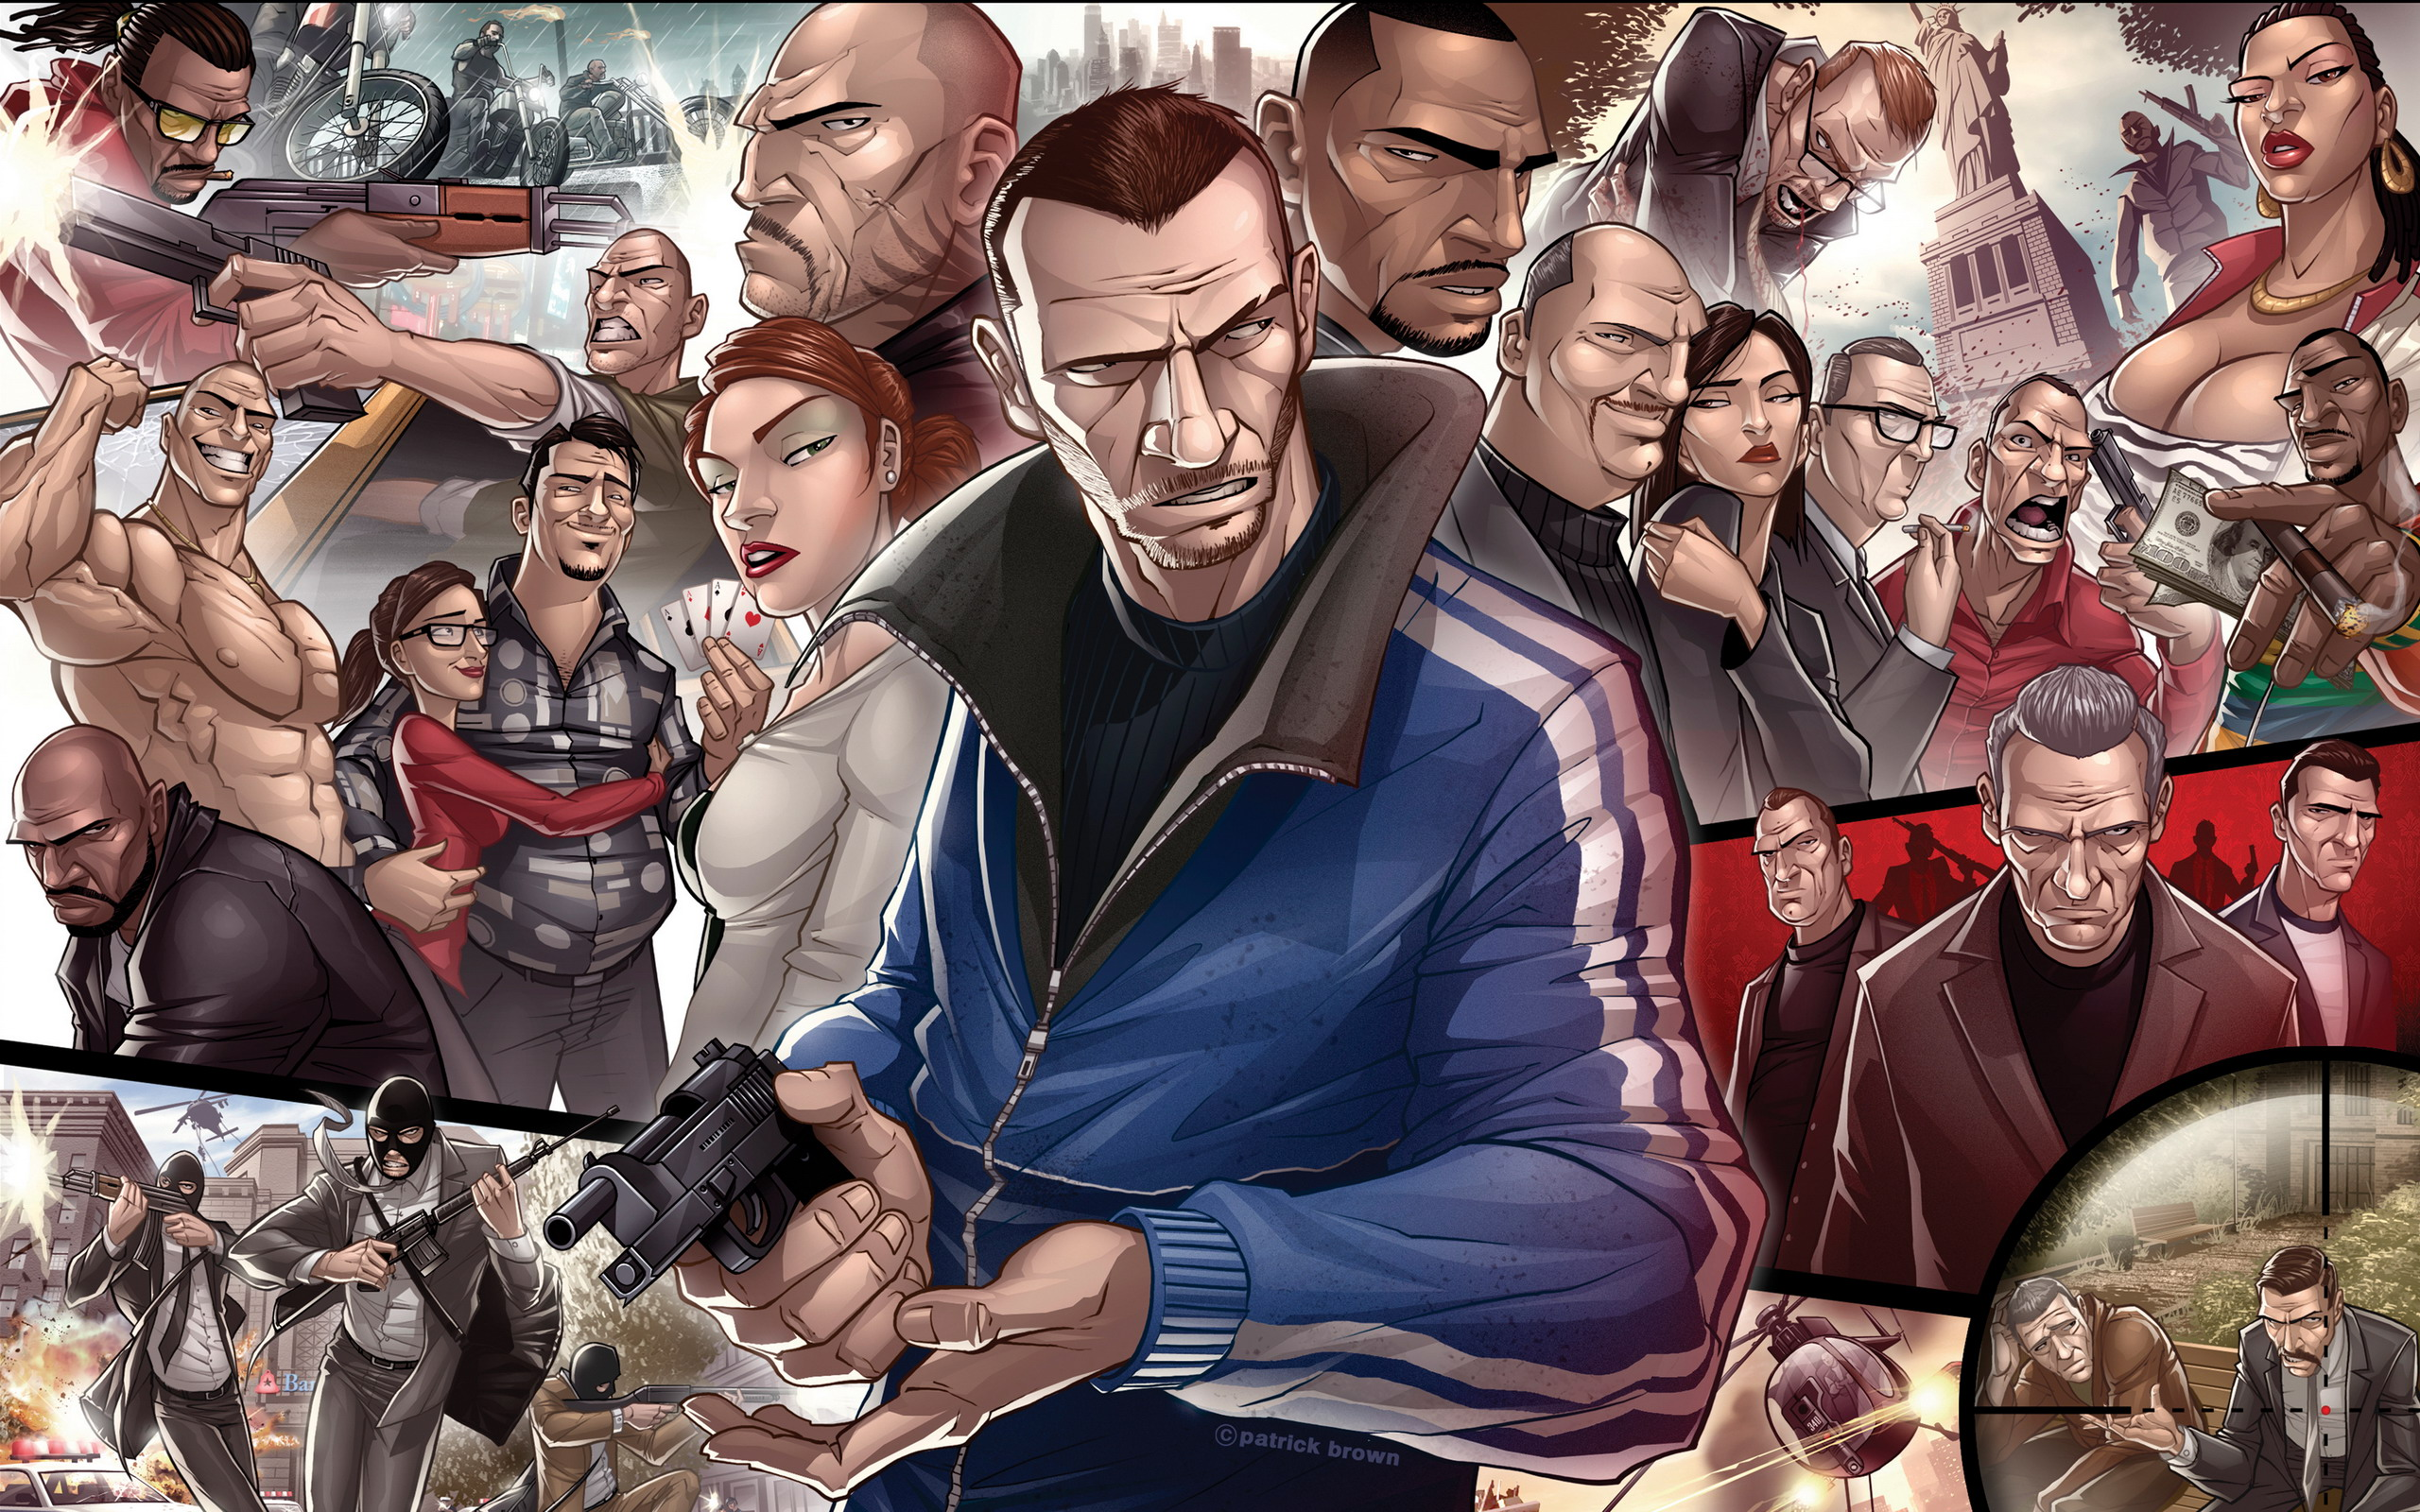 Grand Theft Auto IV Characters wallpaper